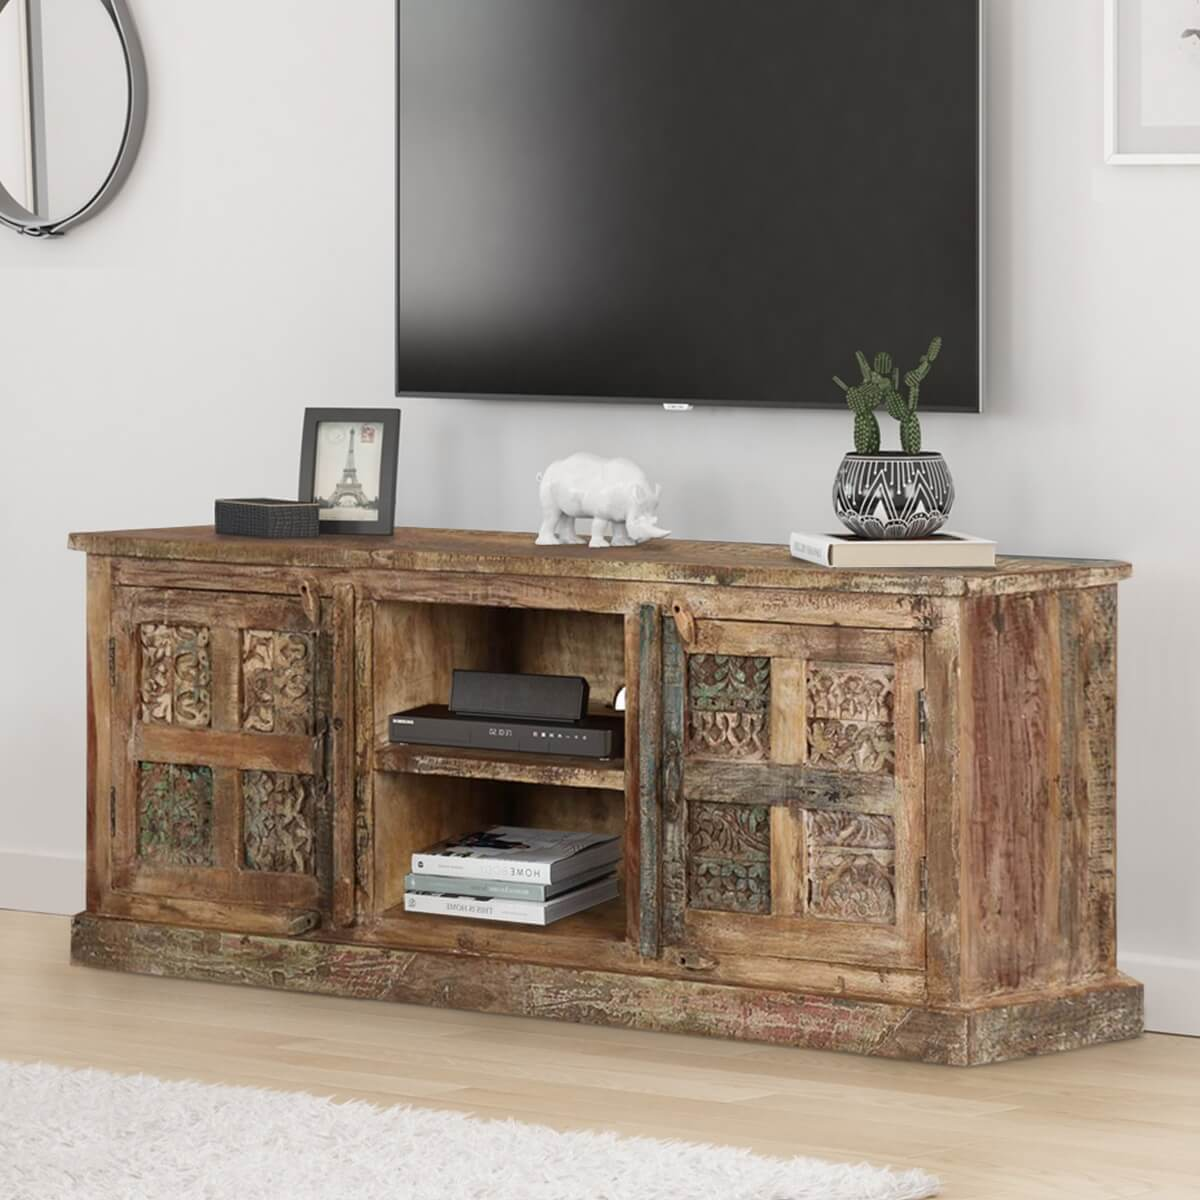 best service 532e6 ab090 Morocco Rustic Reclaimed Wood TV Stand Media Cabinet